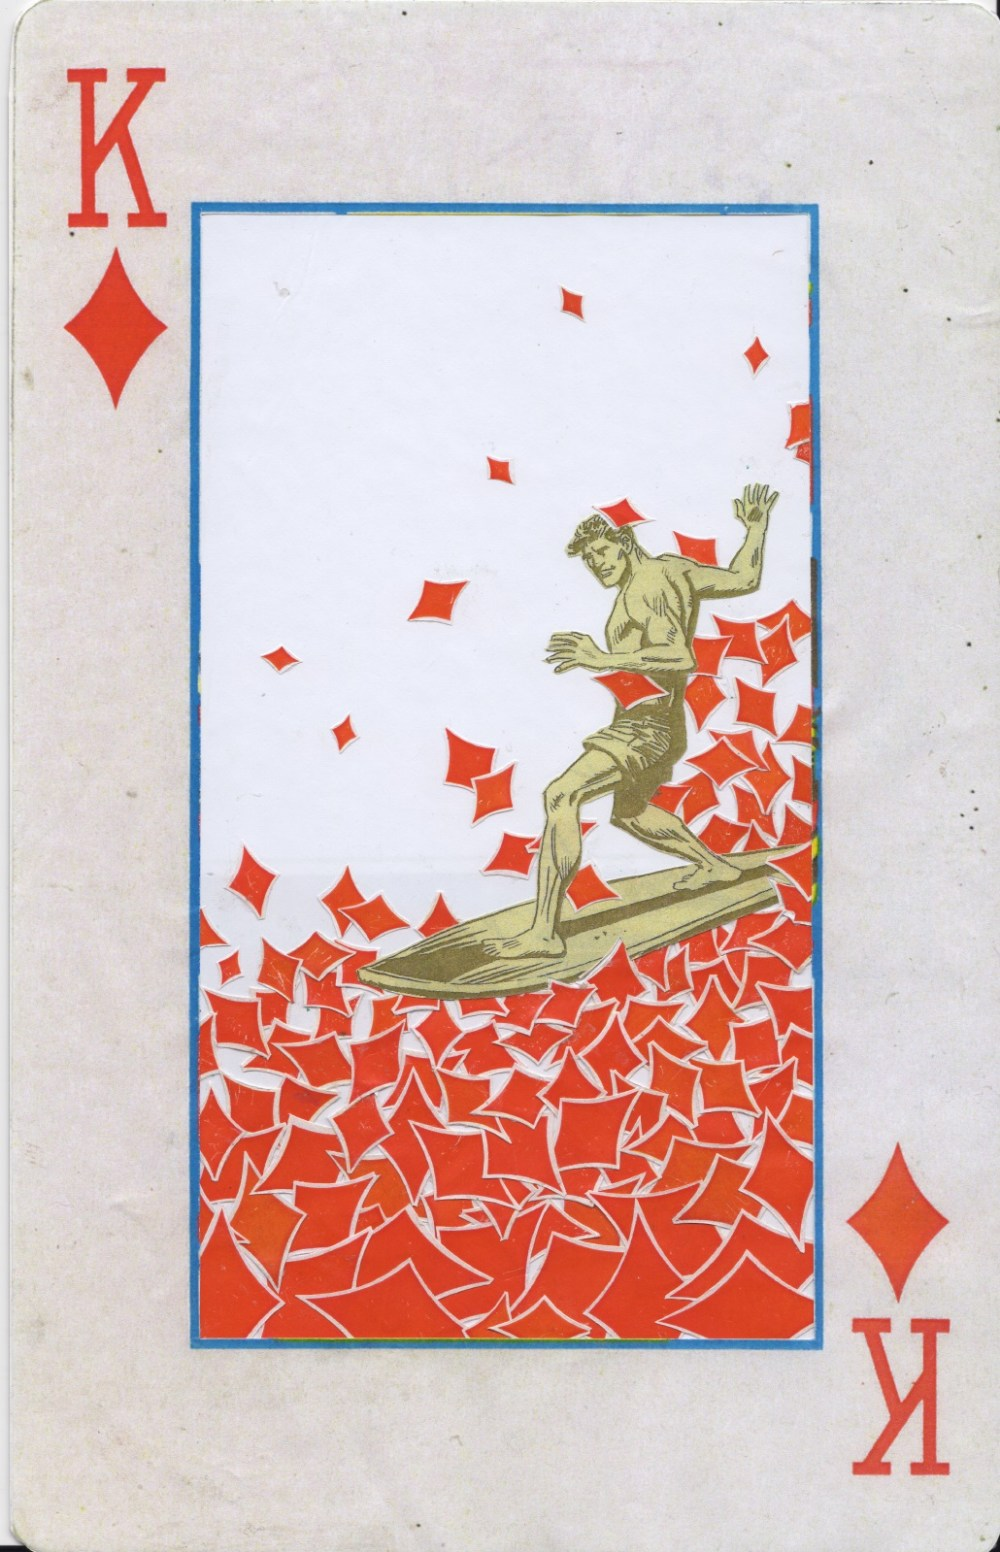 David Mach RA (British, b.1956). 'King of Diamonds'. Collage on board, signed and titled verso. 29.7